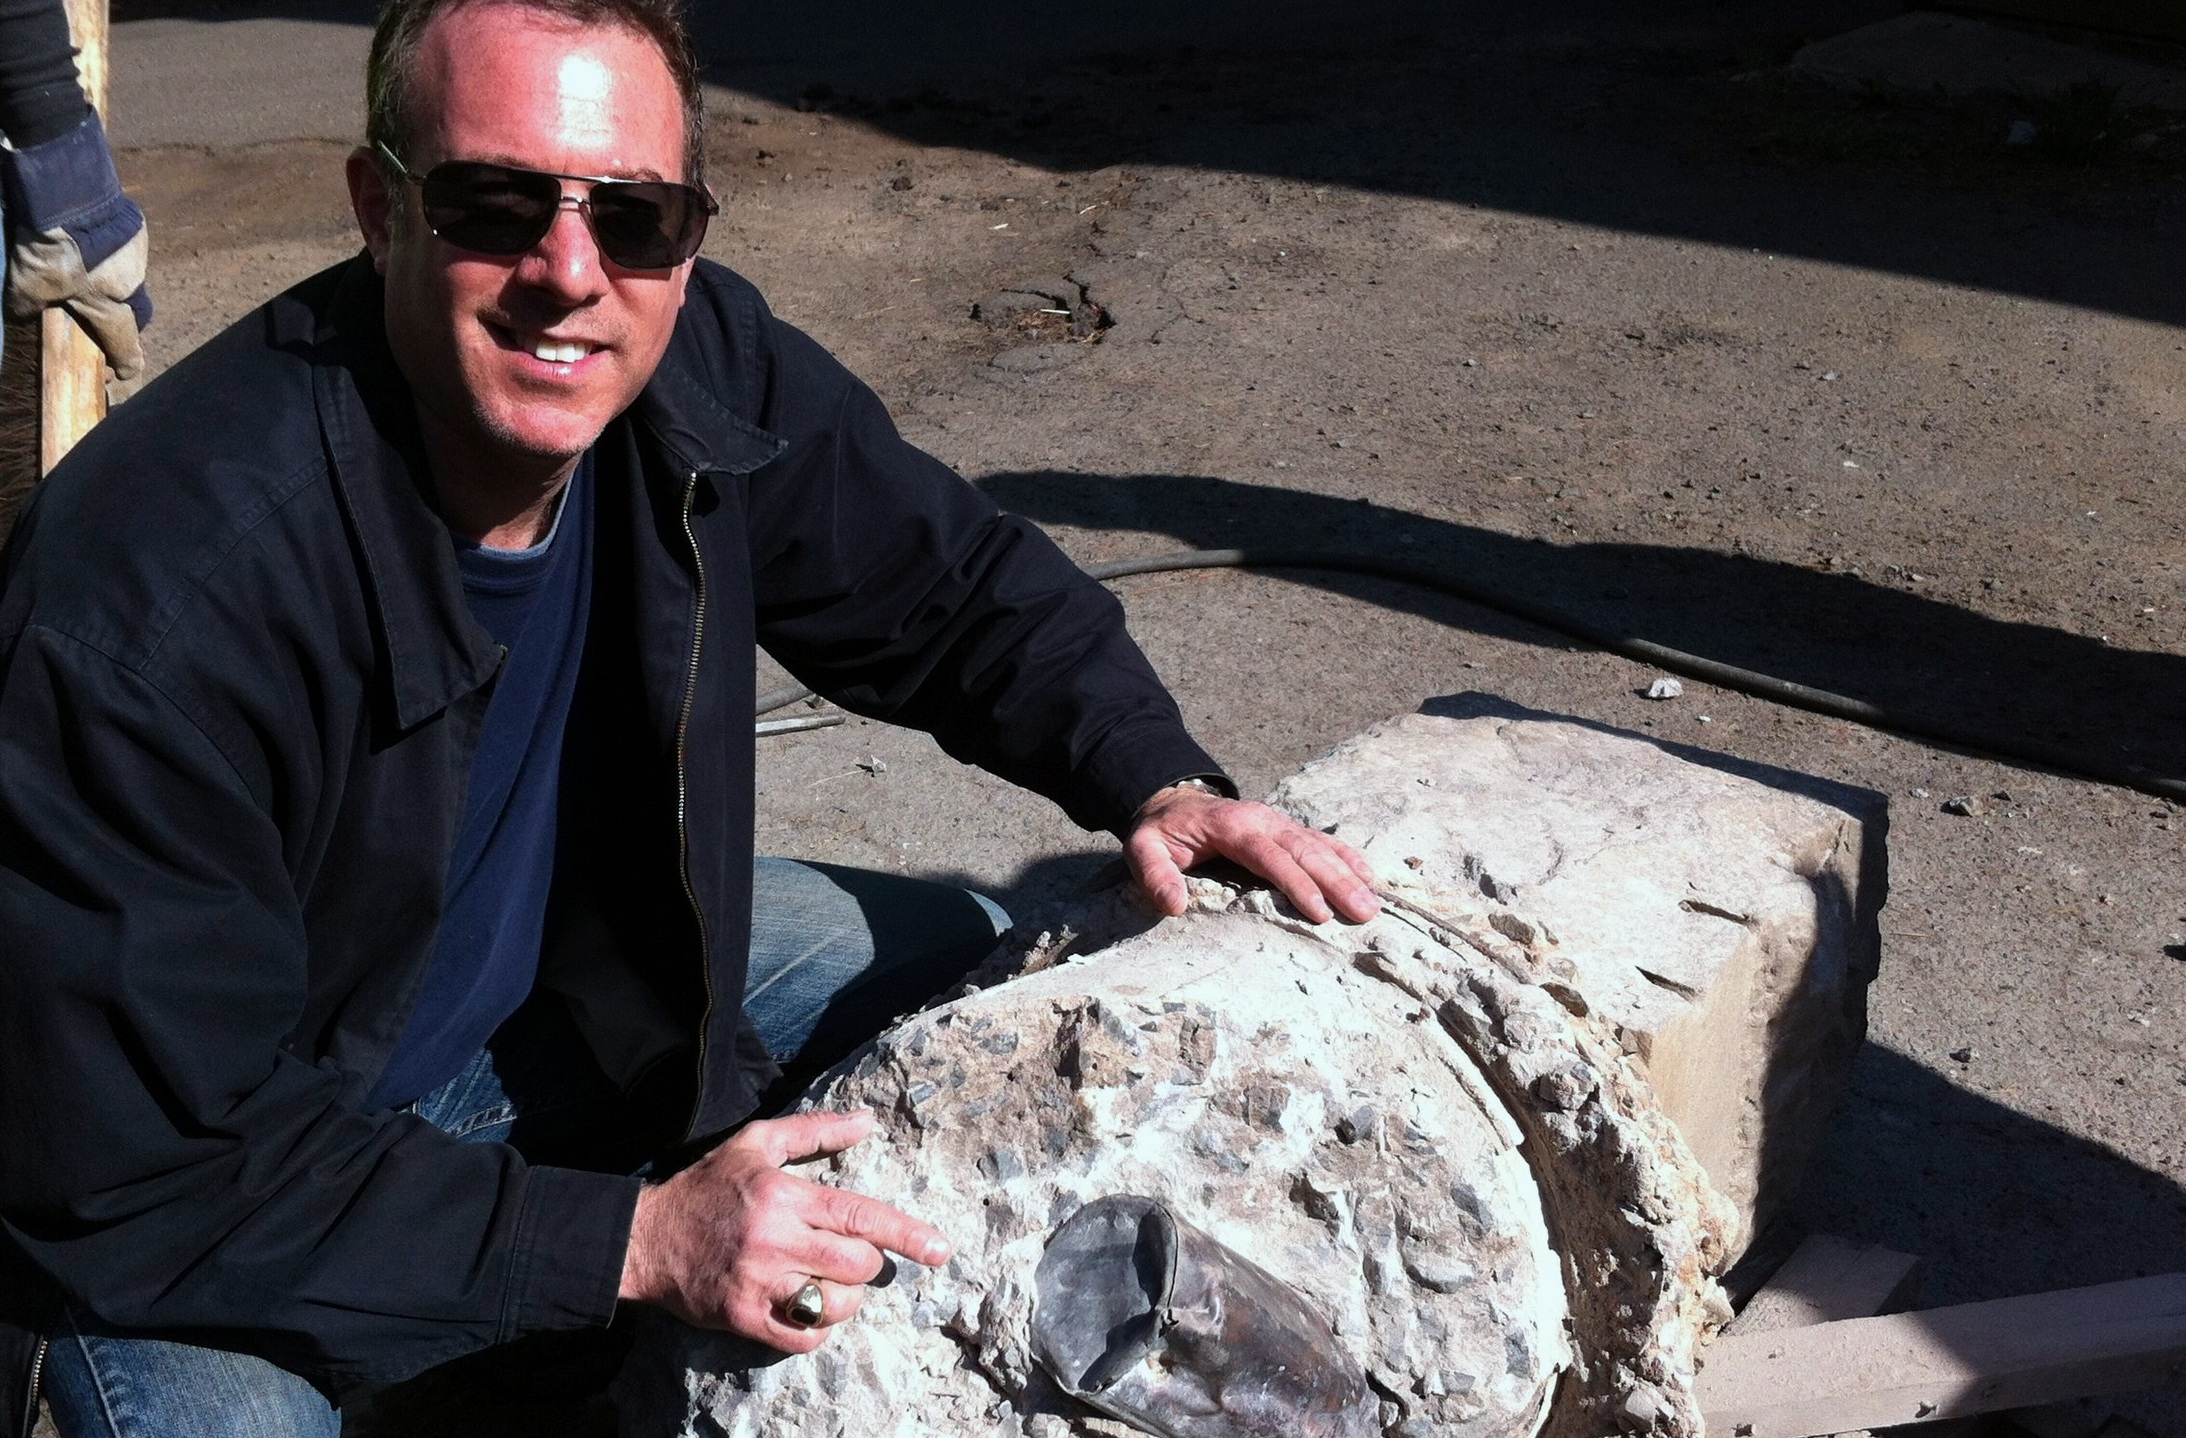 All in a day's work: Robert S. Greenberg unearths a time capsule in New Haven, CT.